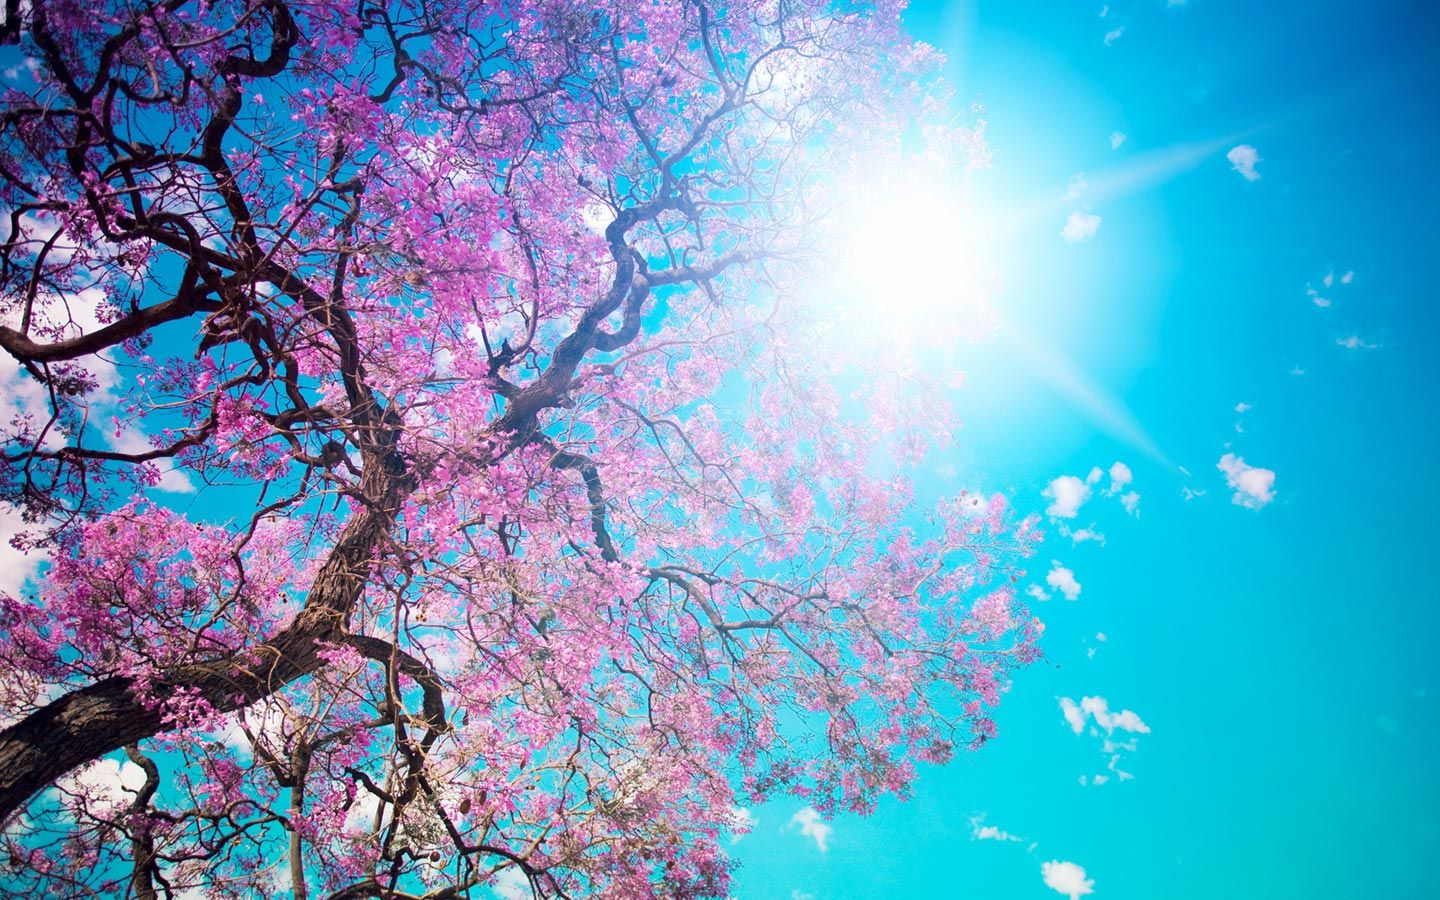 Spring Wallpaper Cool Tumblr Wallpapers In 2019 Spring Wallpaper